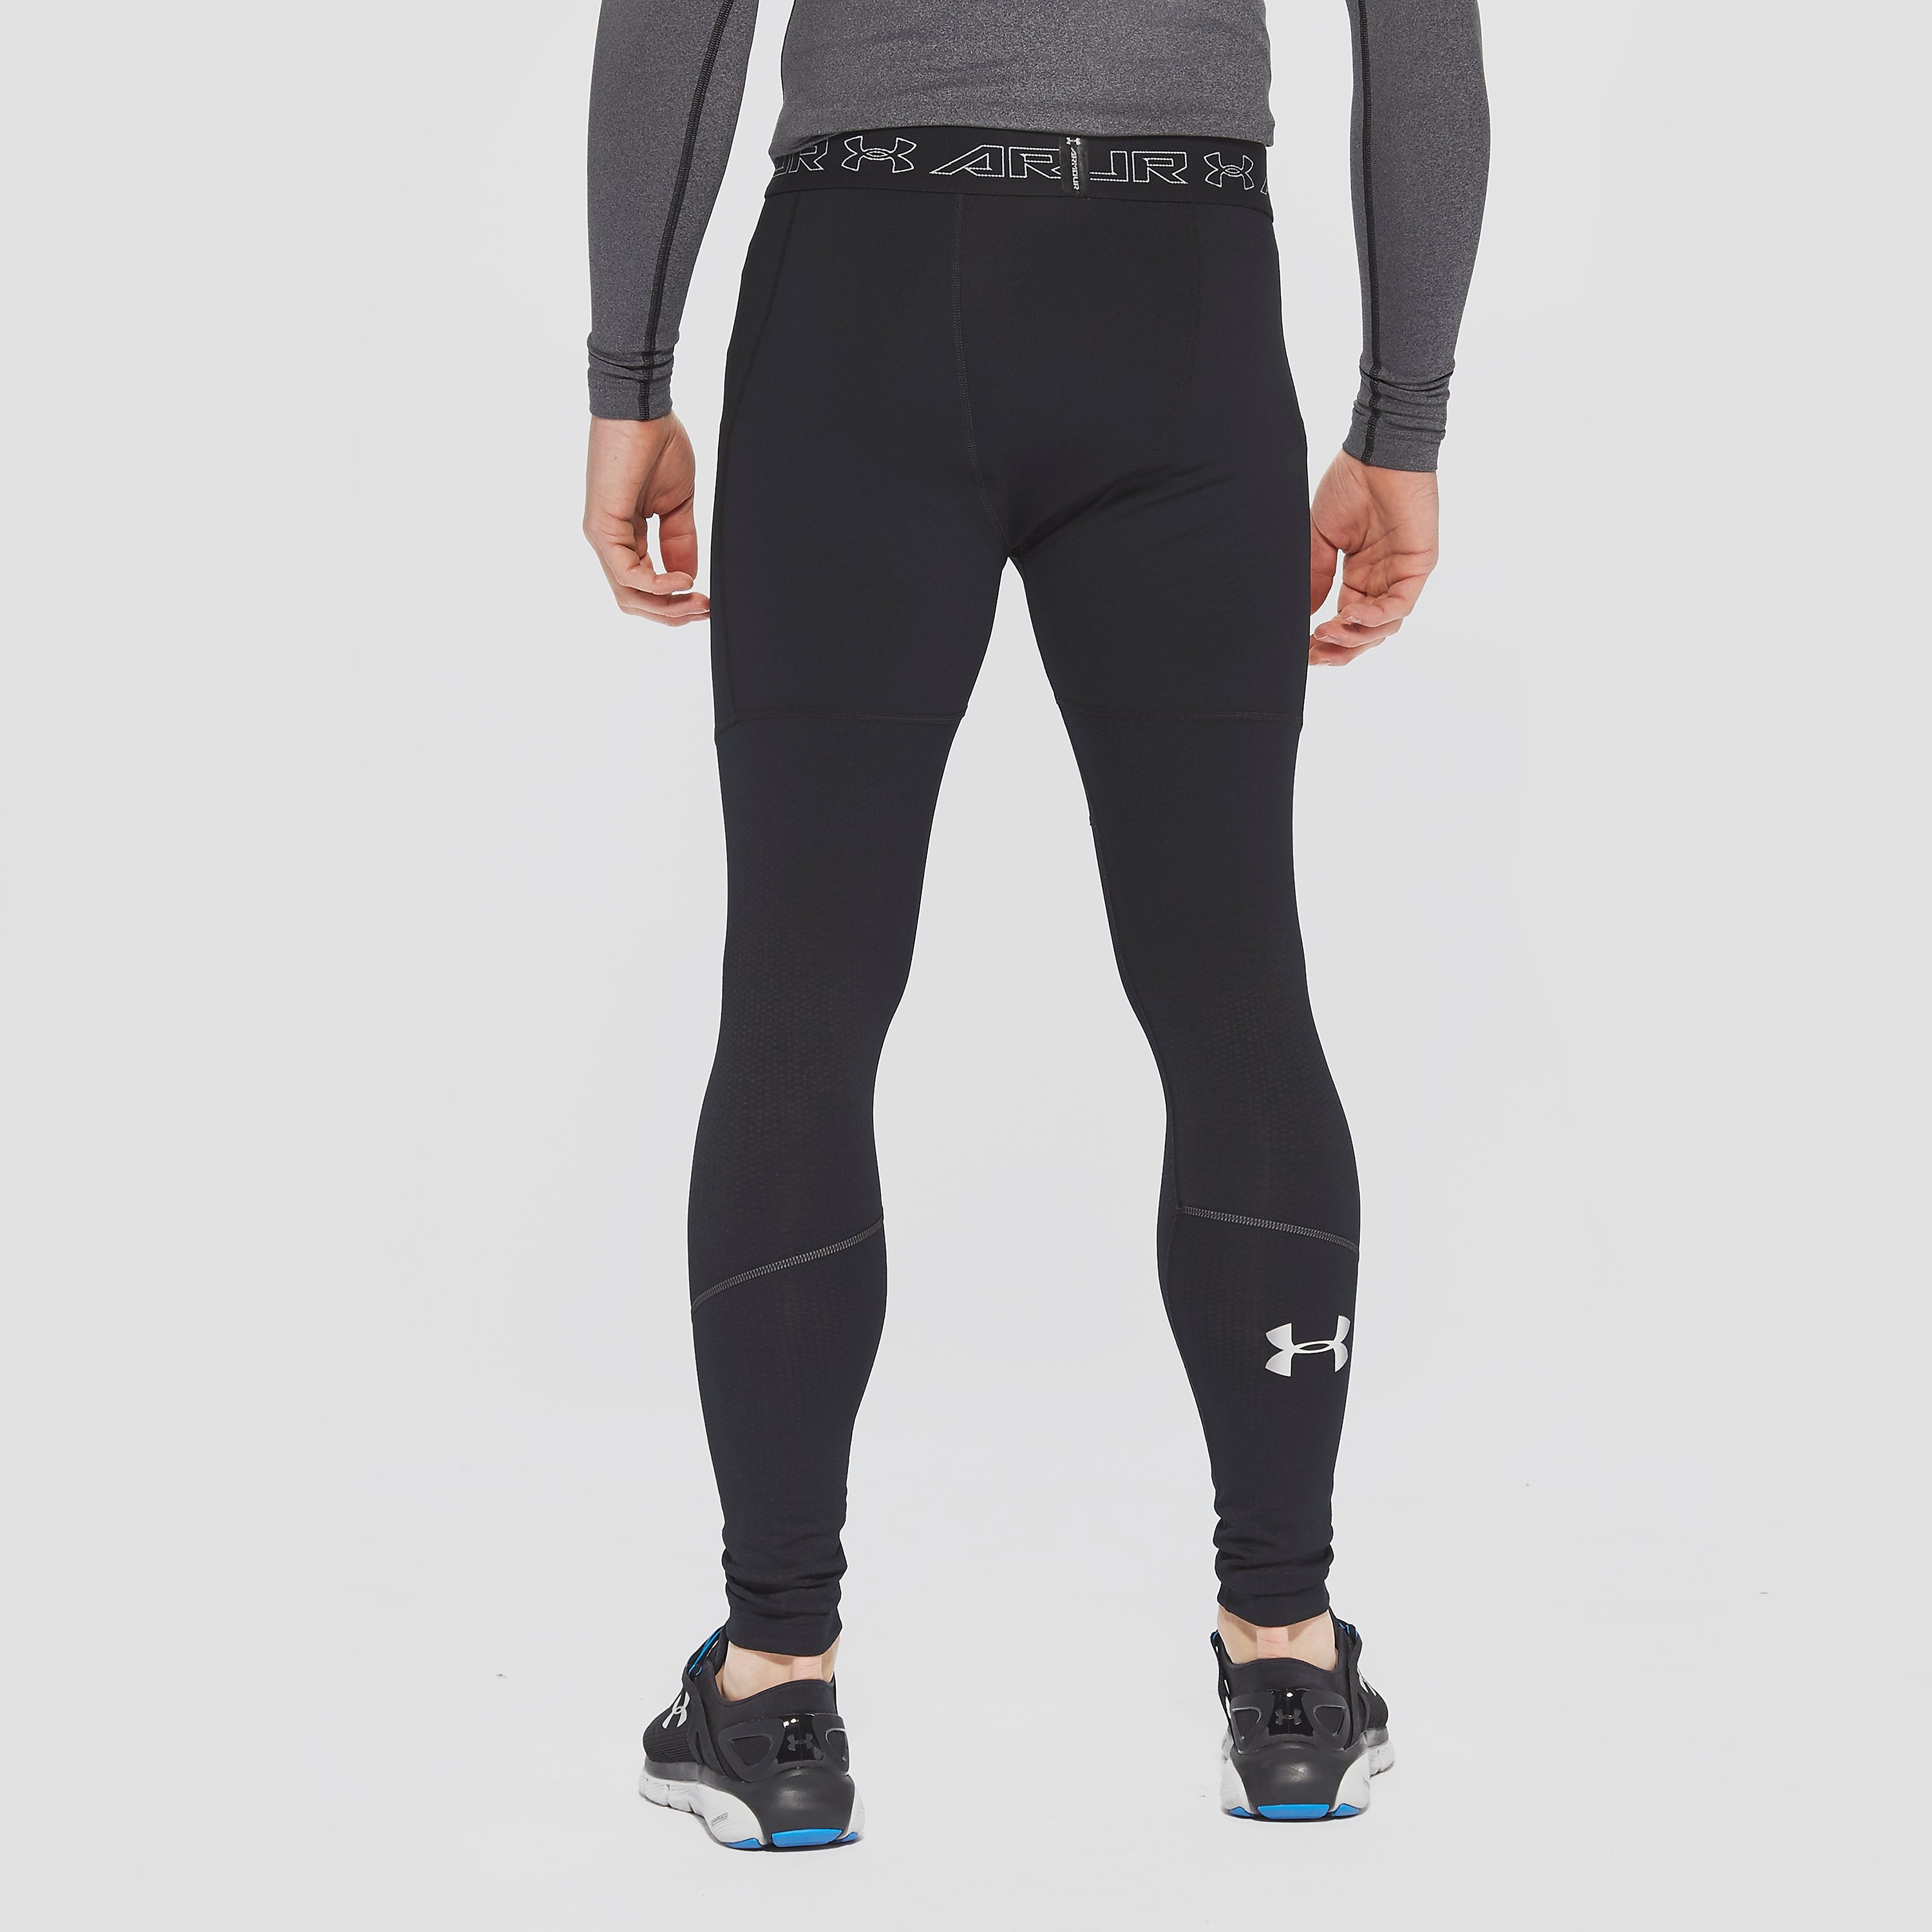 Under Armour Storm Windstopper Men's Running Leggings